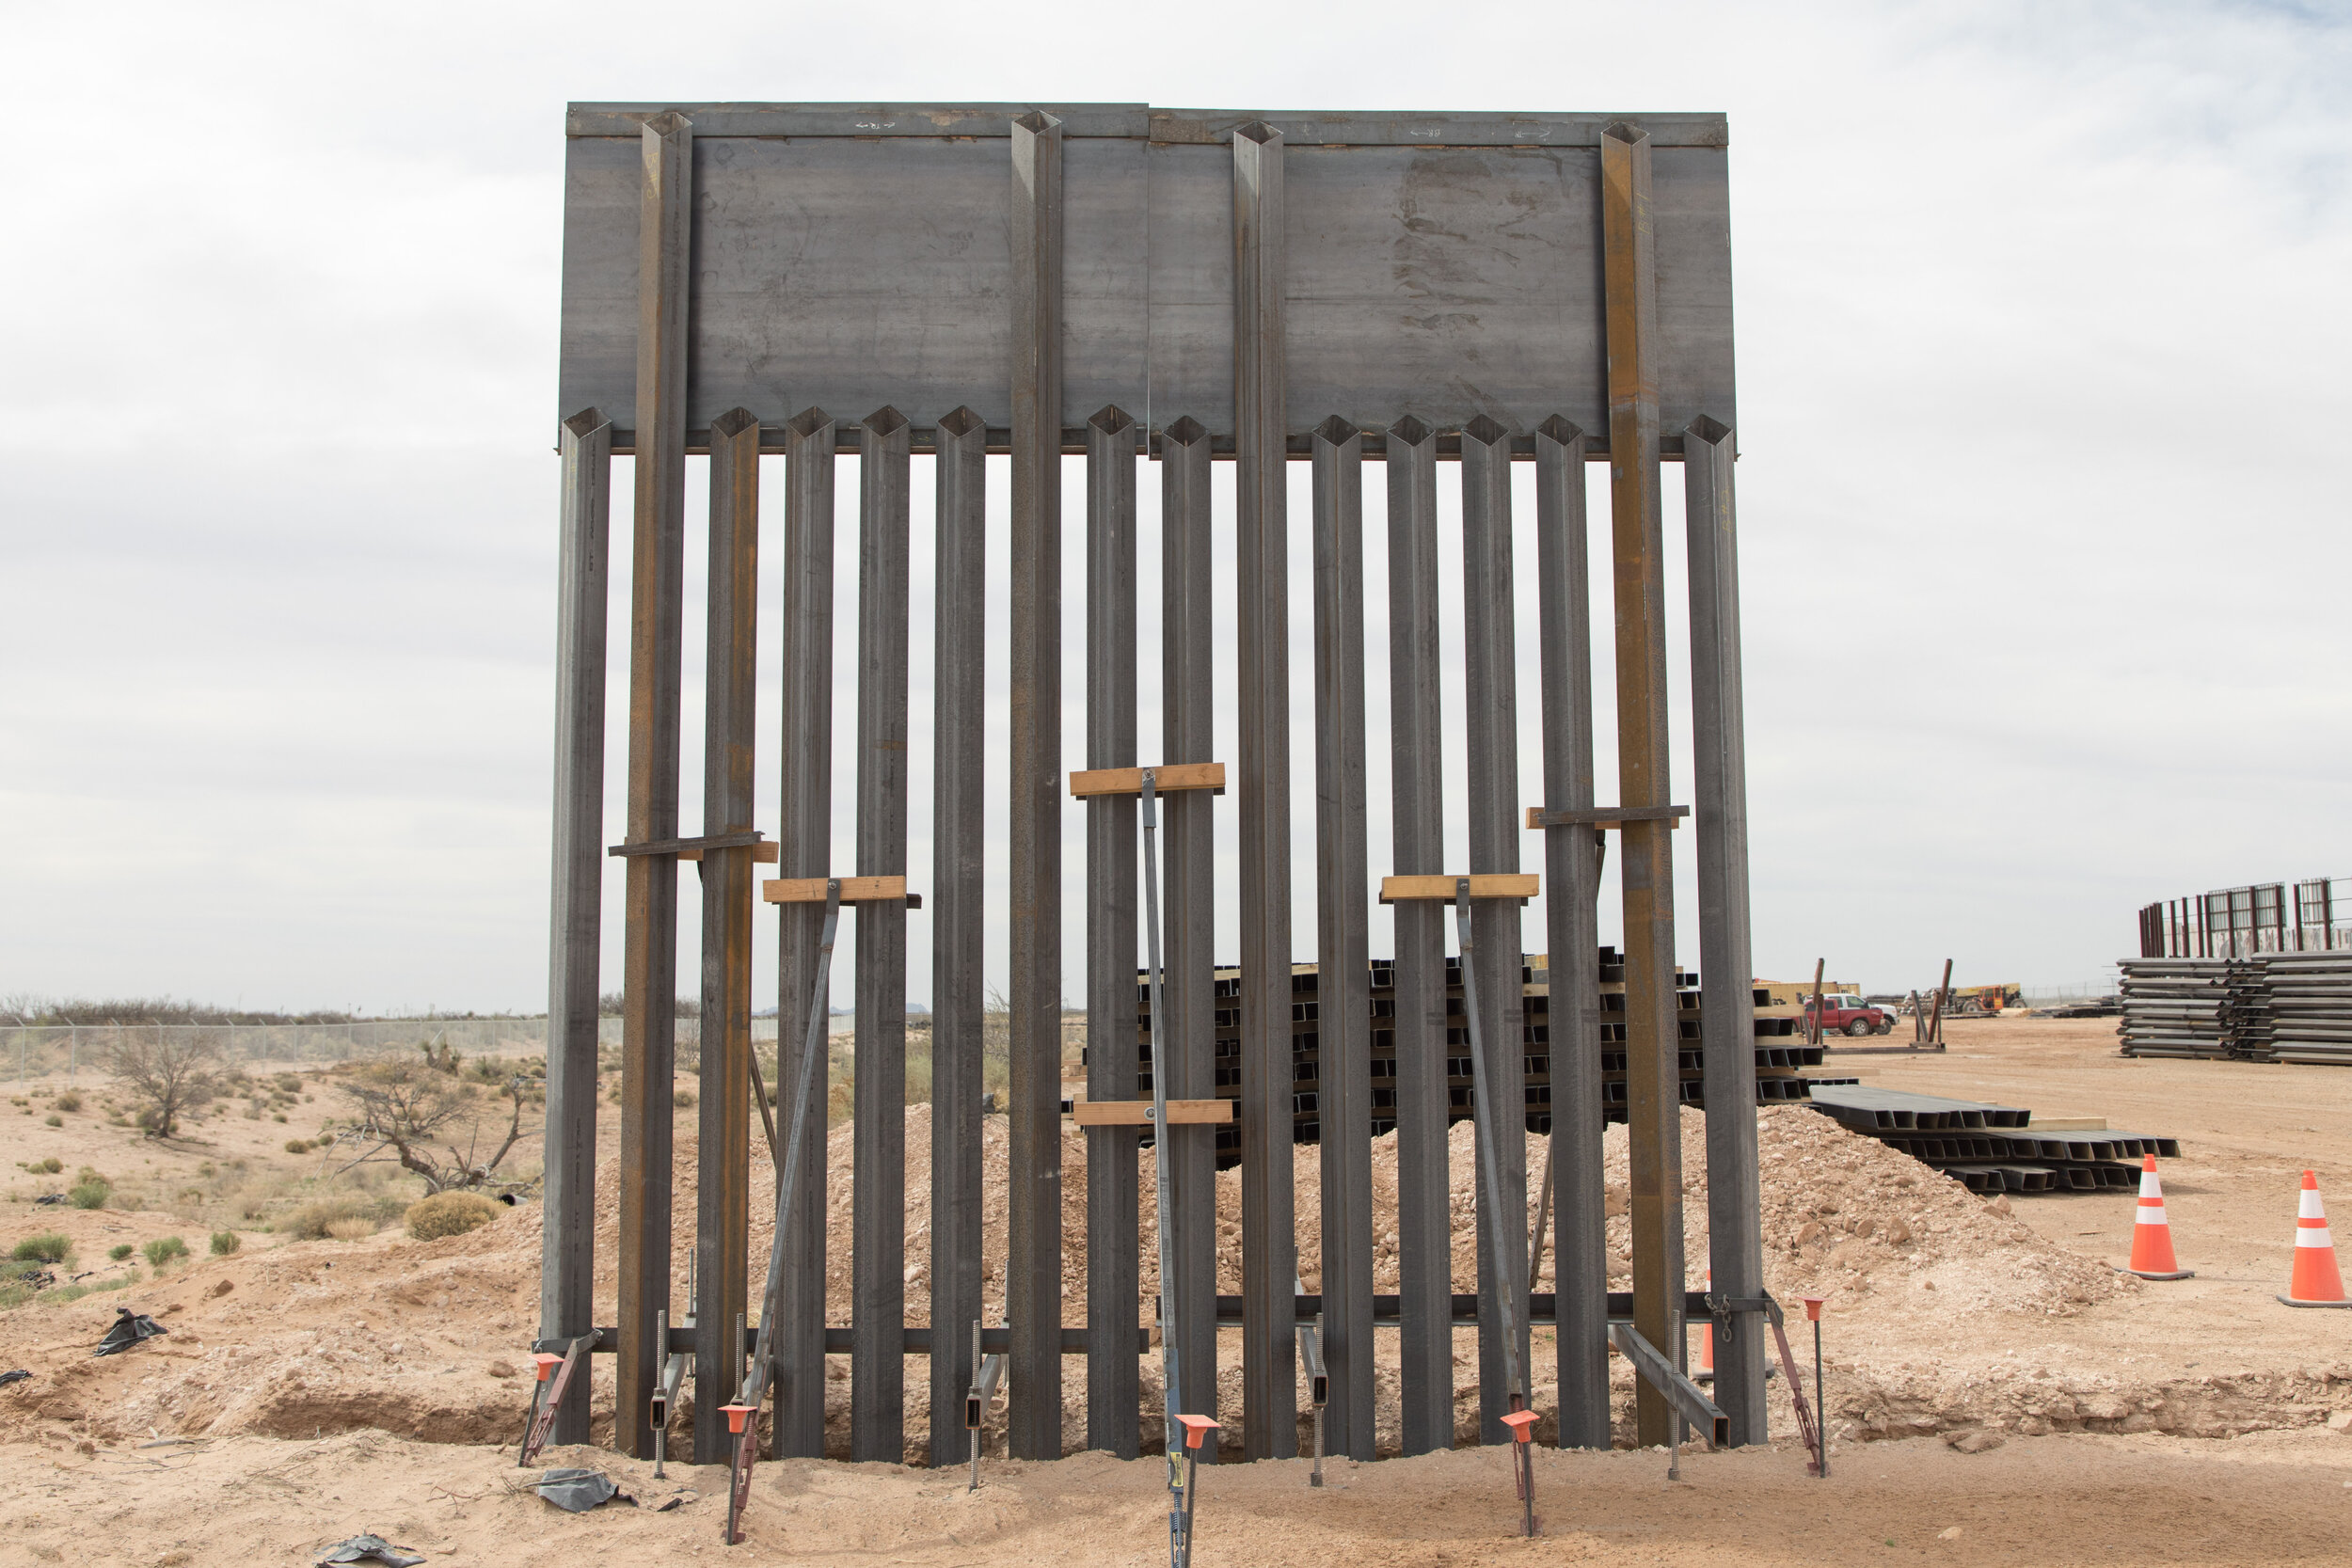 construction-staging-area-for-the-santa-teresa-border-wall-replacement-project_26466111647_o.jpg